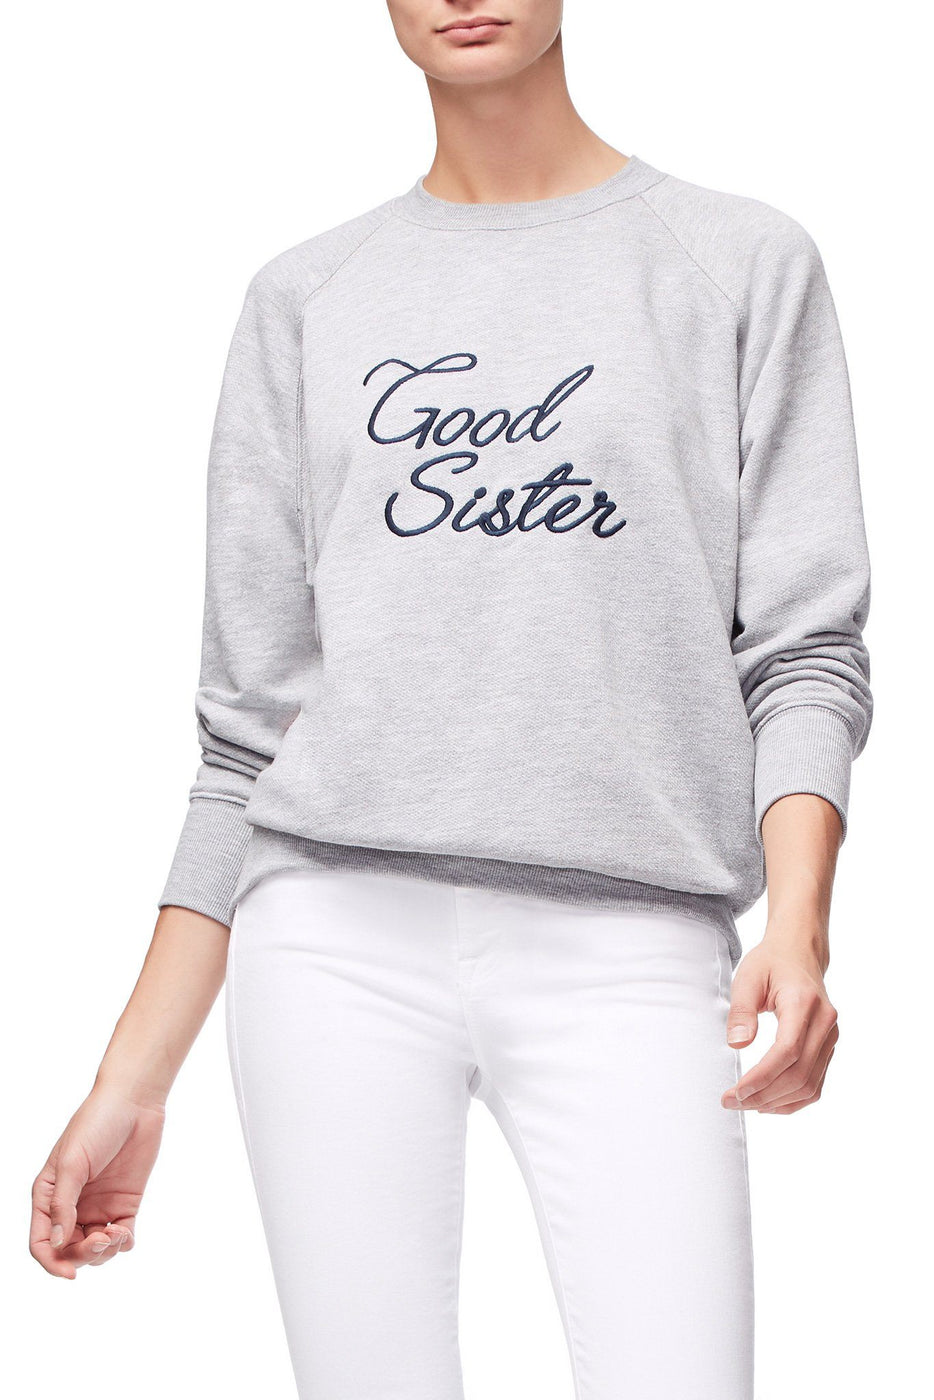 Good American The Good Sister Sweater | Good Sister